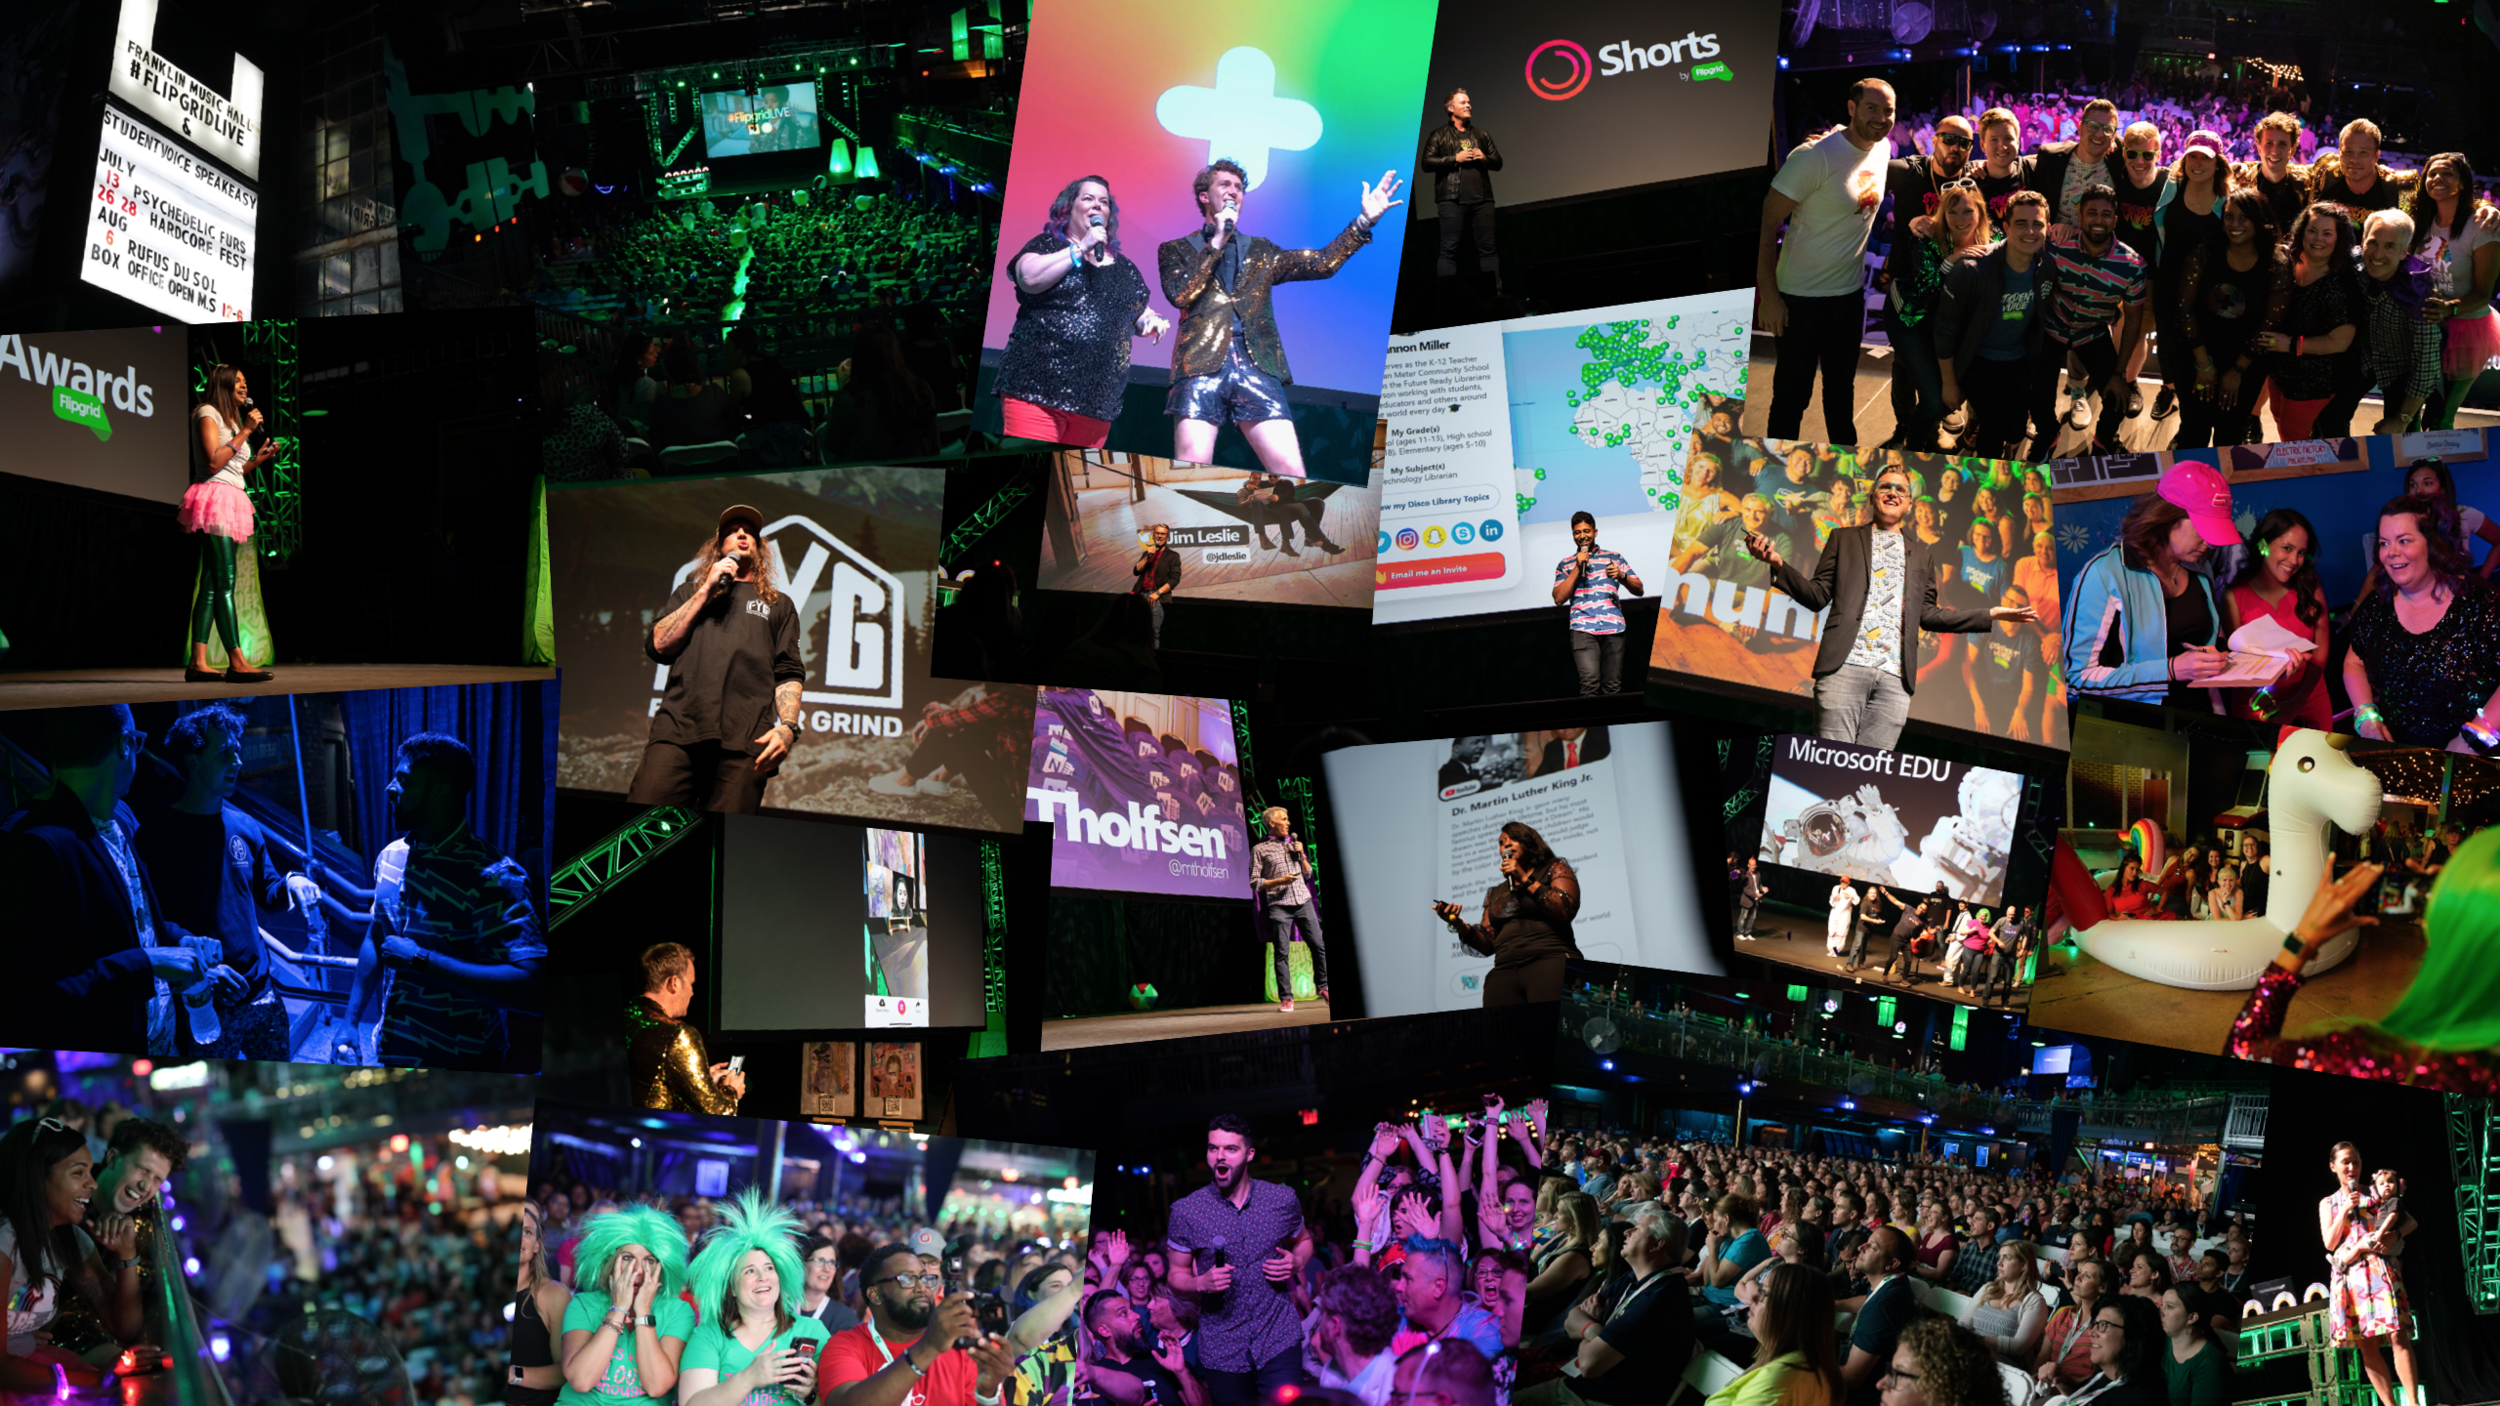 Summary_FlipgridLIVE_Collage_24June2019.png